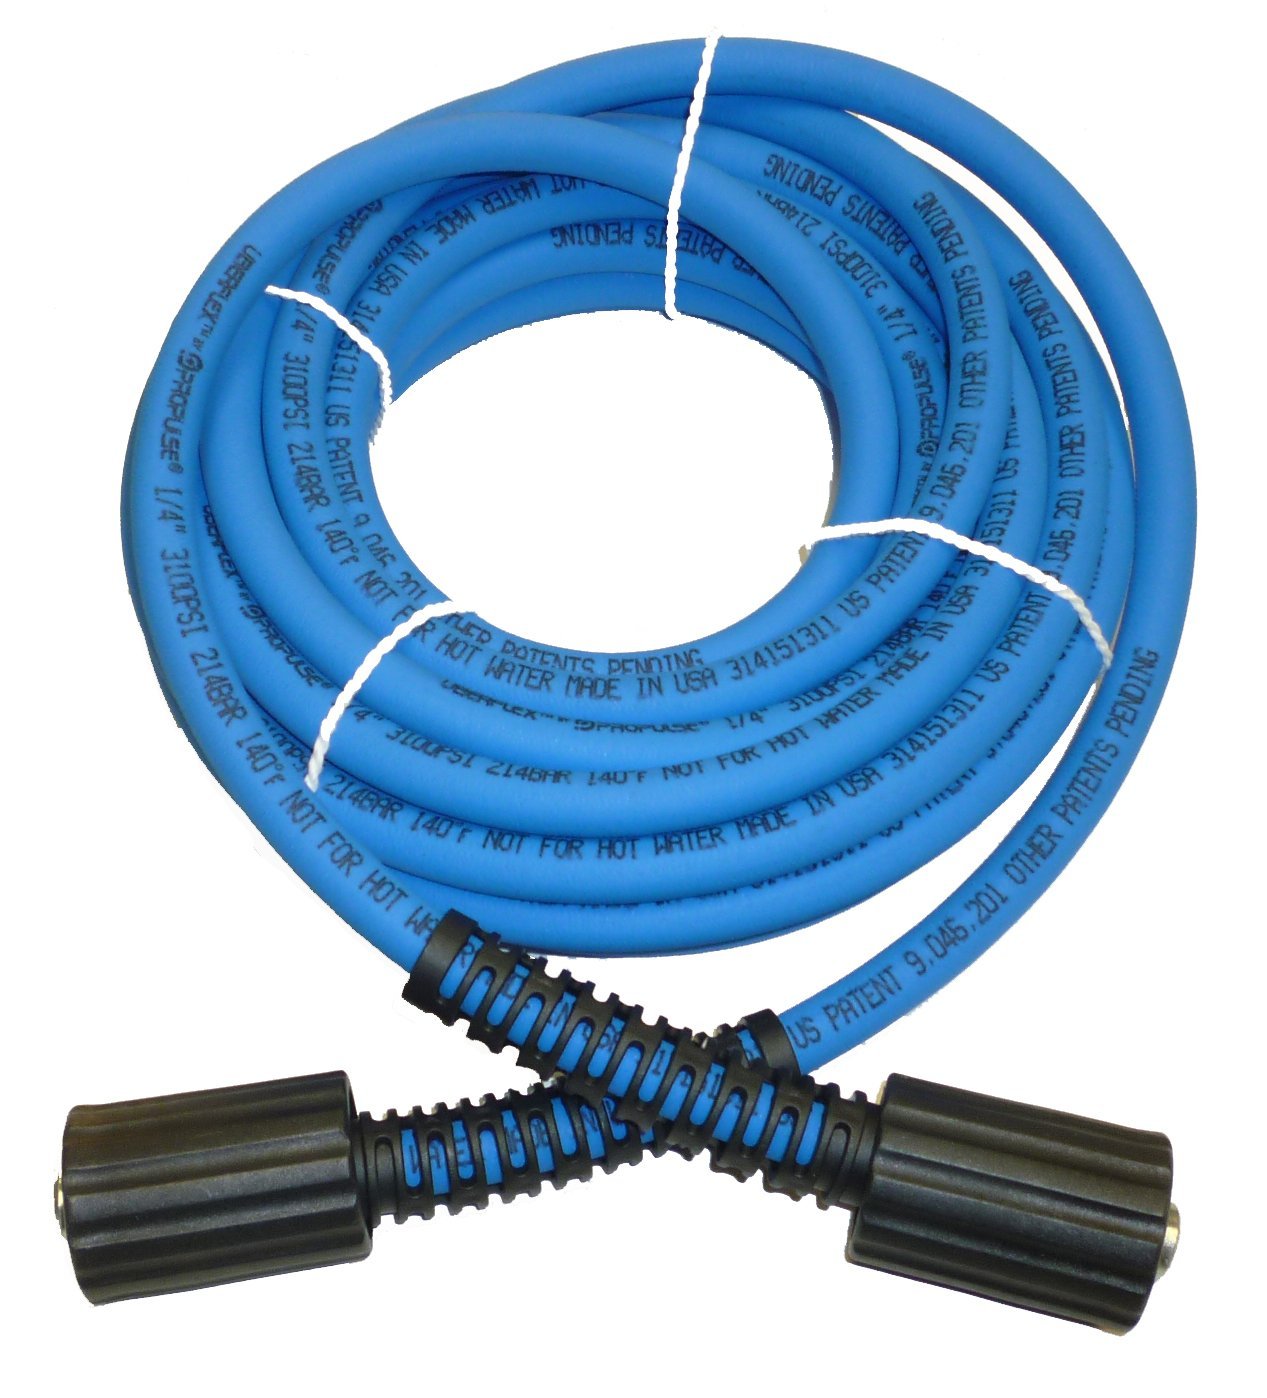 UBERFLEX Kink Resistant Pressure Washer Hose 1/4'' x 25' 3,100 PSI with (2) 22MM by PROPULSE